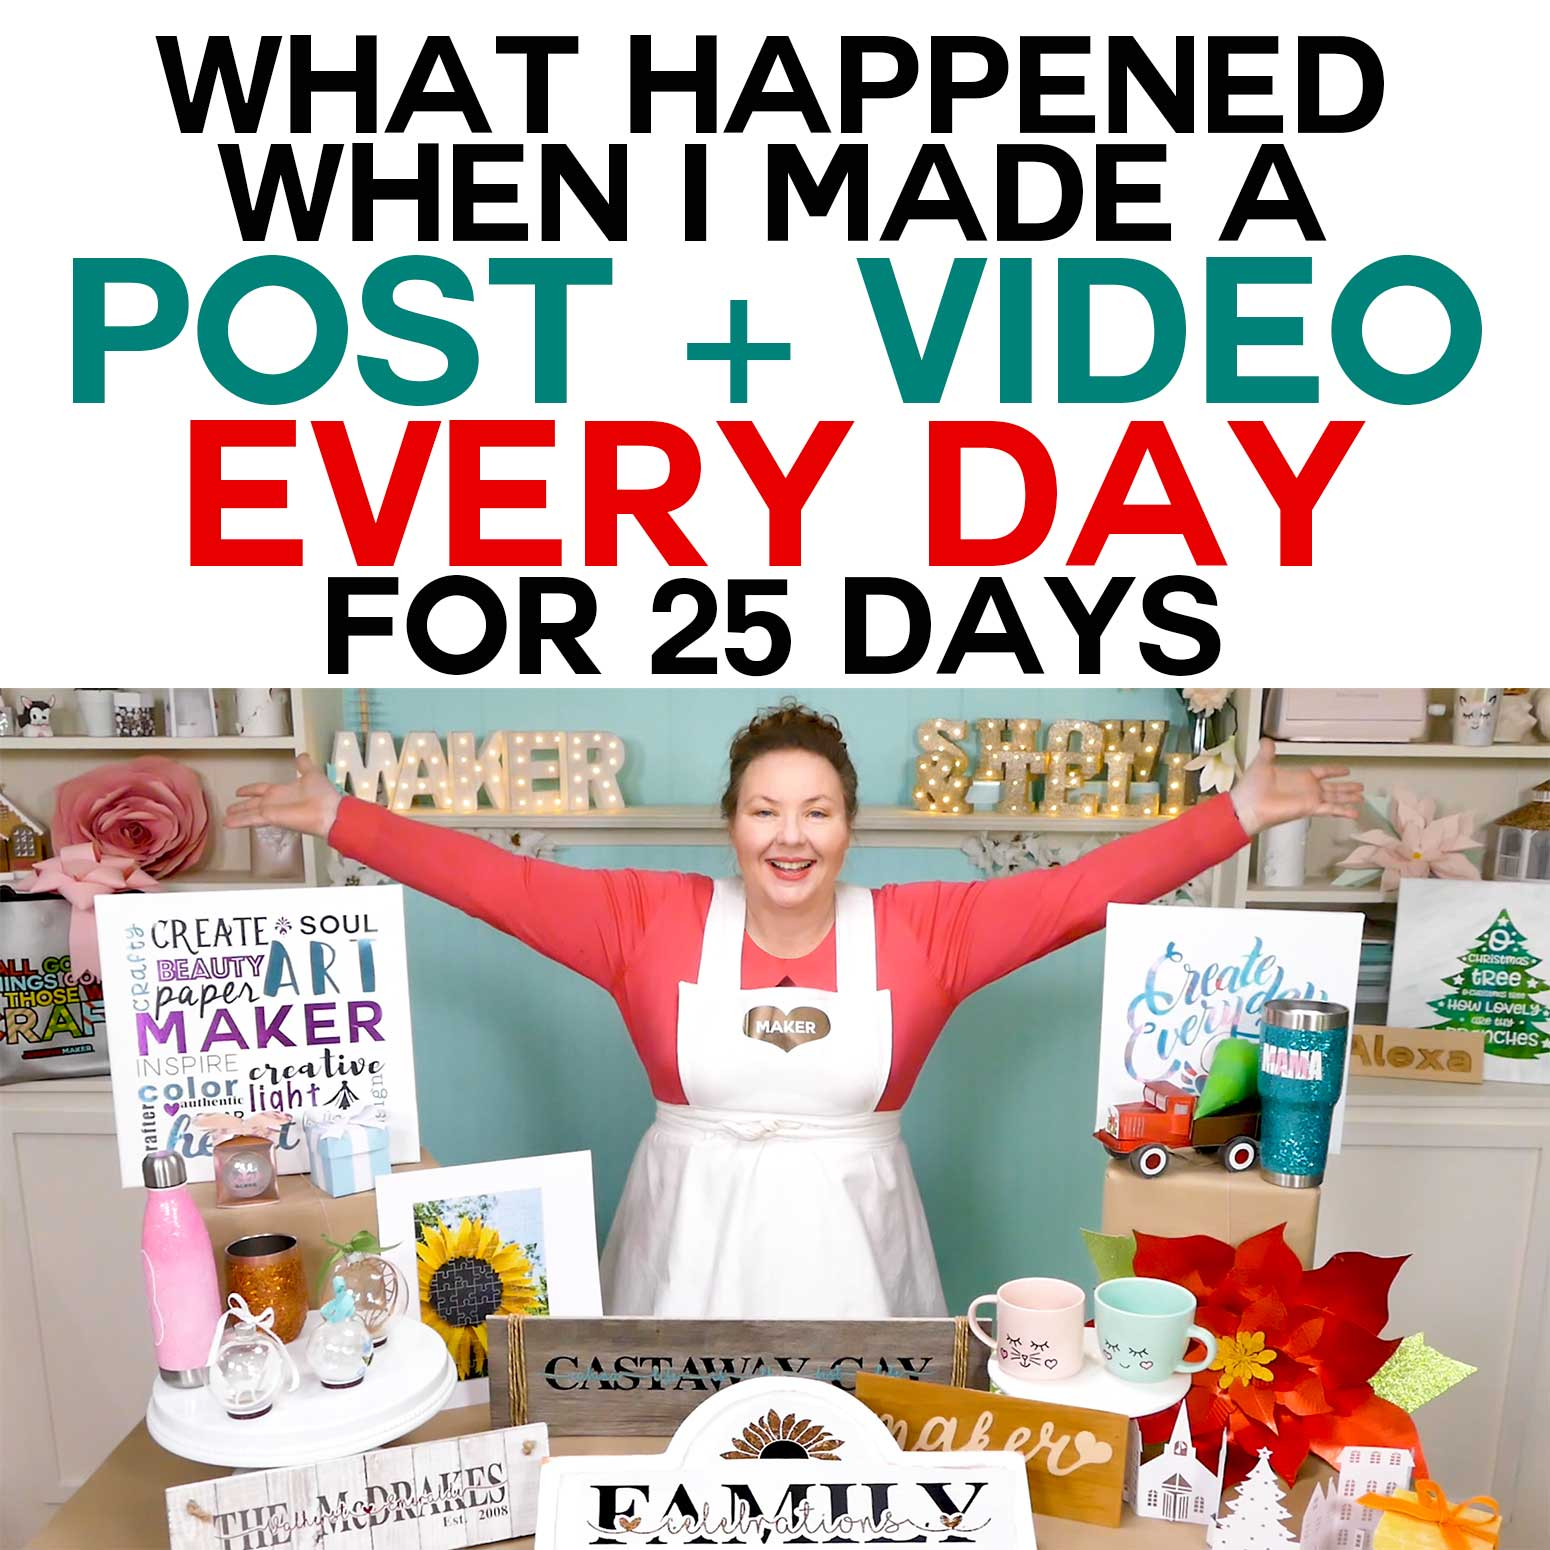 What Happened When I Made a Post + Video Every Day for 25 Days